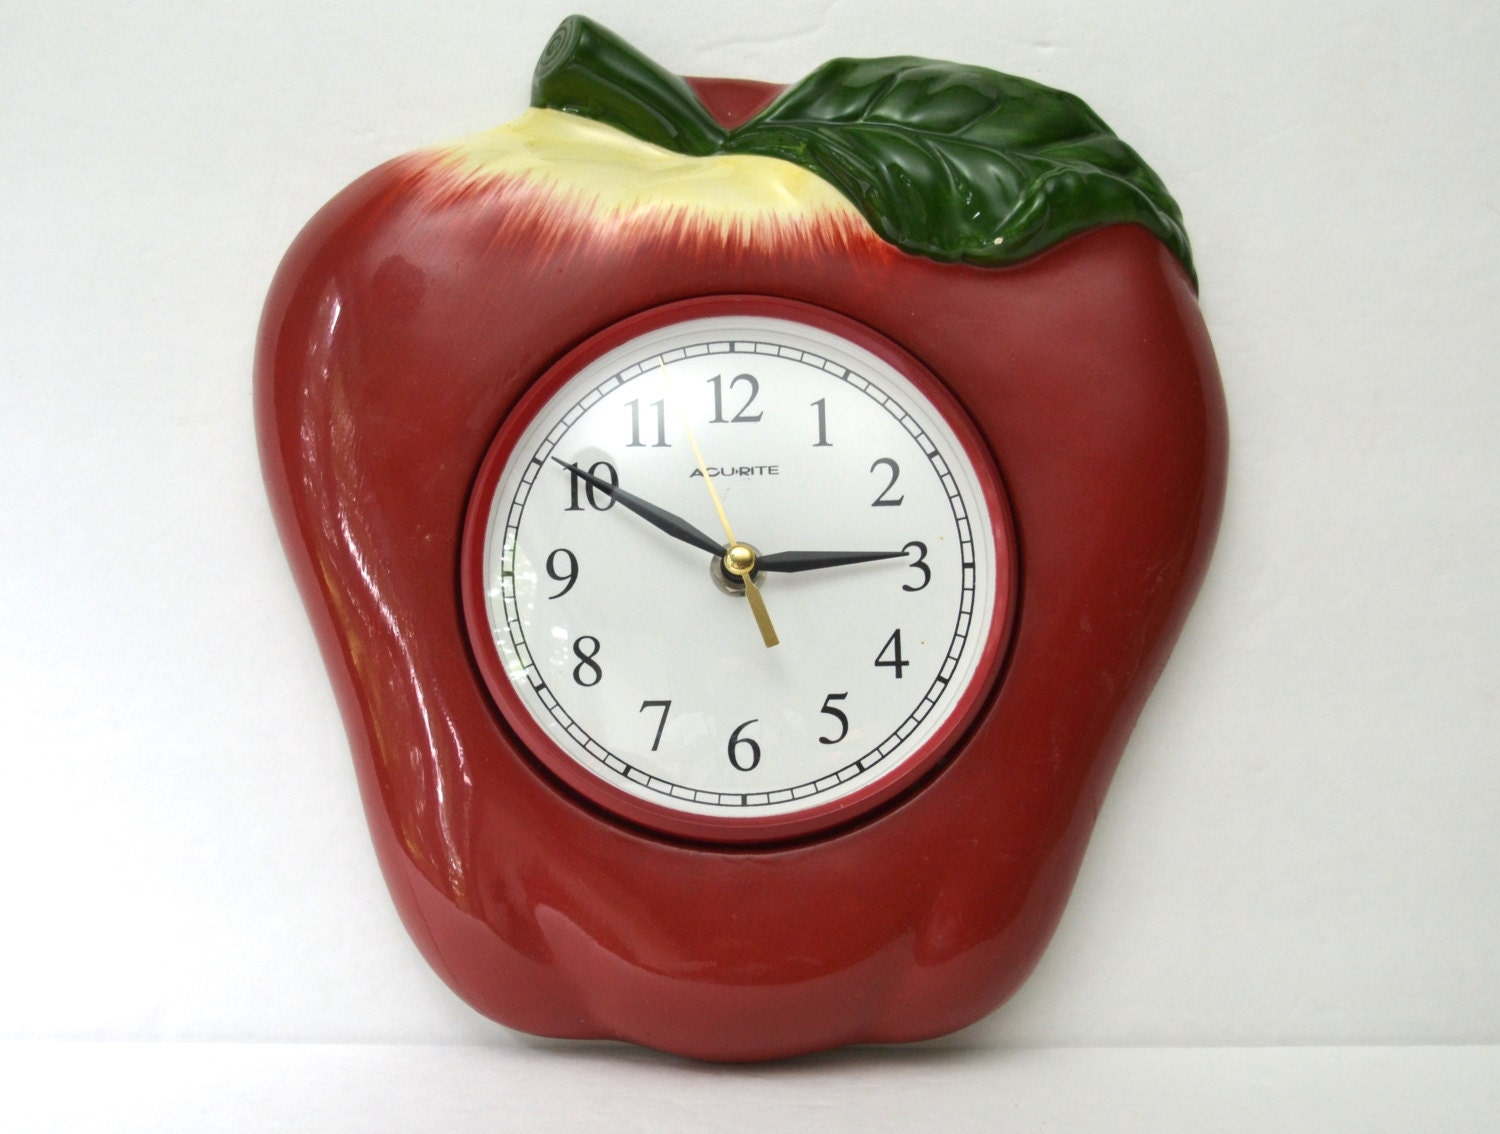 Red Apple Ceramic Wall Clock Large Acu Rite Battery Operated